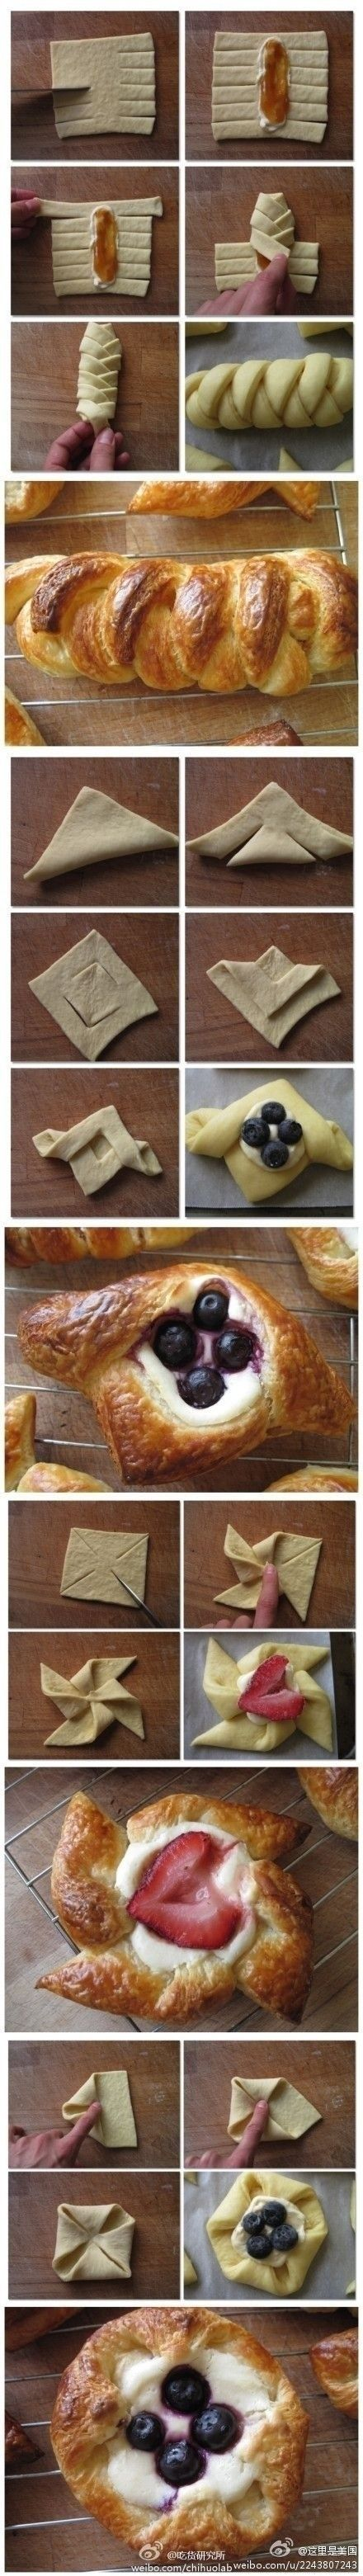 Pastry Folding 101 - nice tutorial if you're feeling creative!